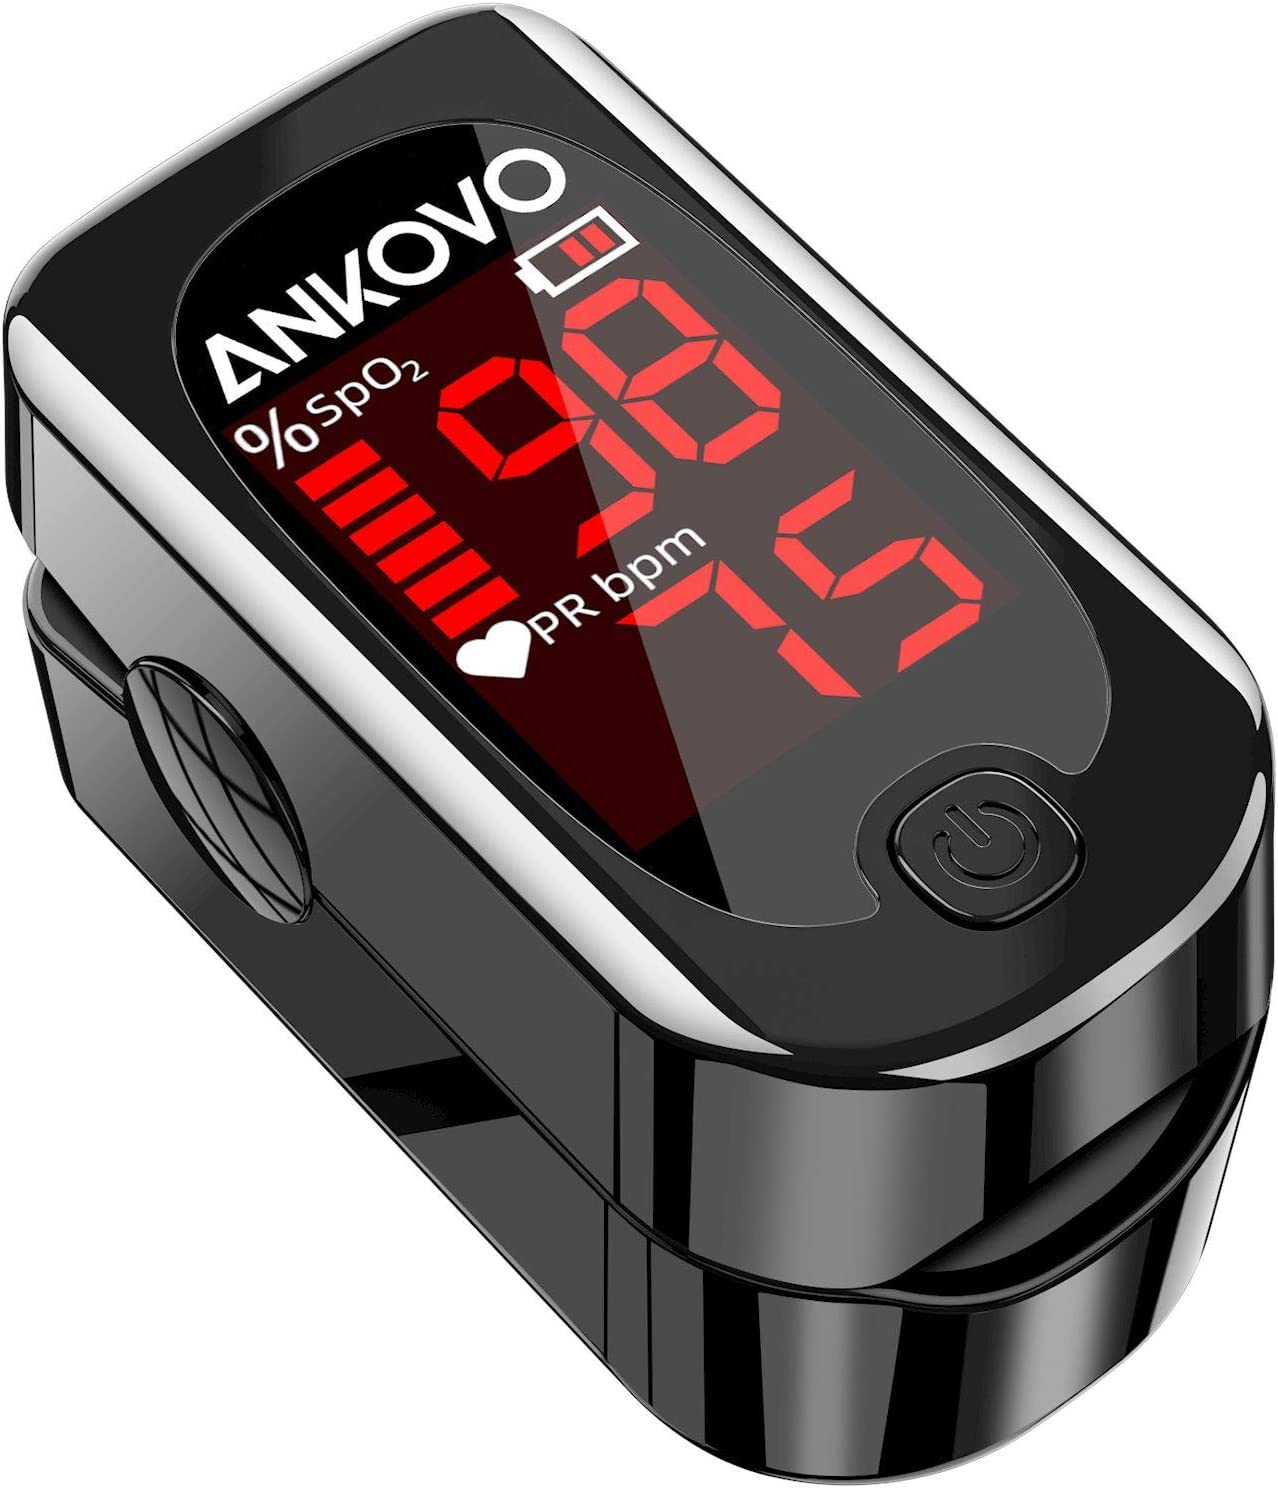 Amazon.com: Pulse Oximeter Fingertip, ANKOVO Blood Oxygen Saturation Monitor  with Pulse Heart Rate Monitor Portable Pulse Ox Include Lanyard 2 Batteries  (Royal Black) (Black): Health & Personal Care